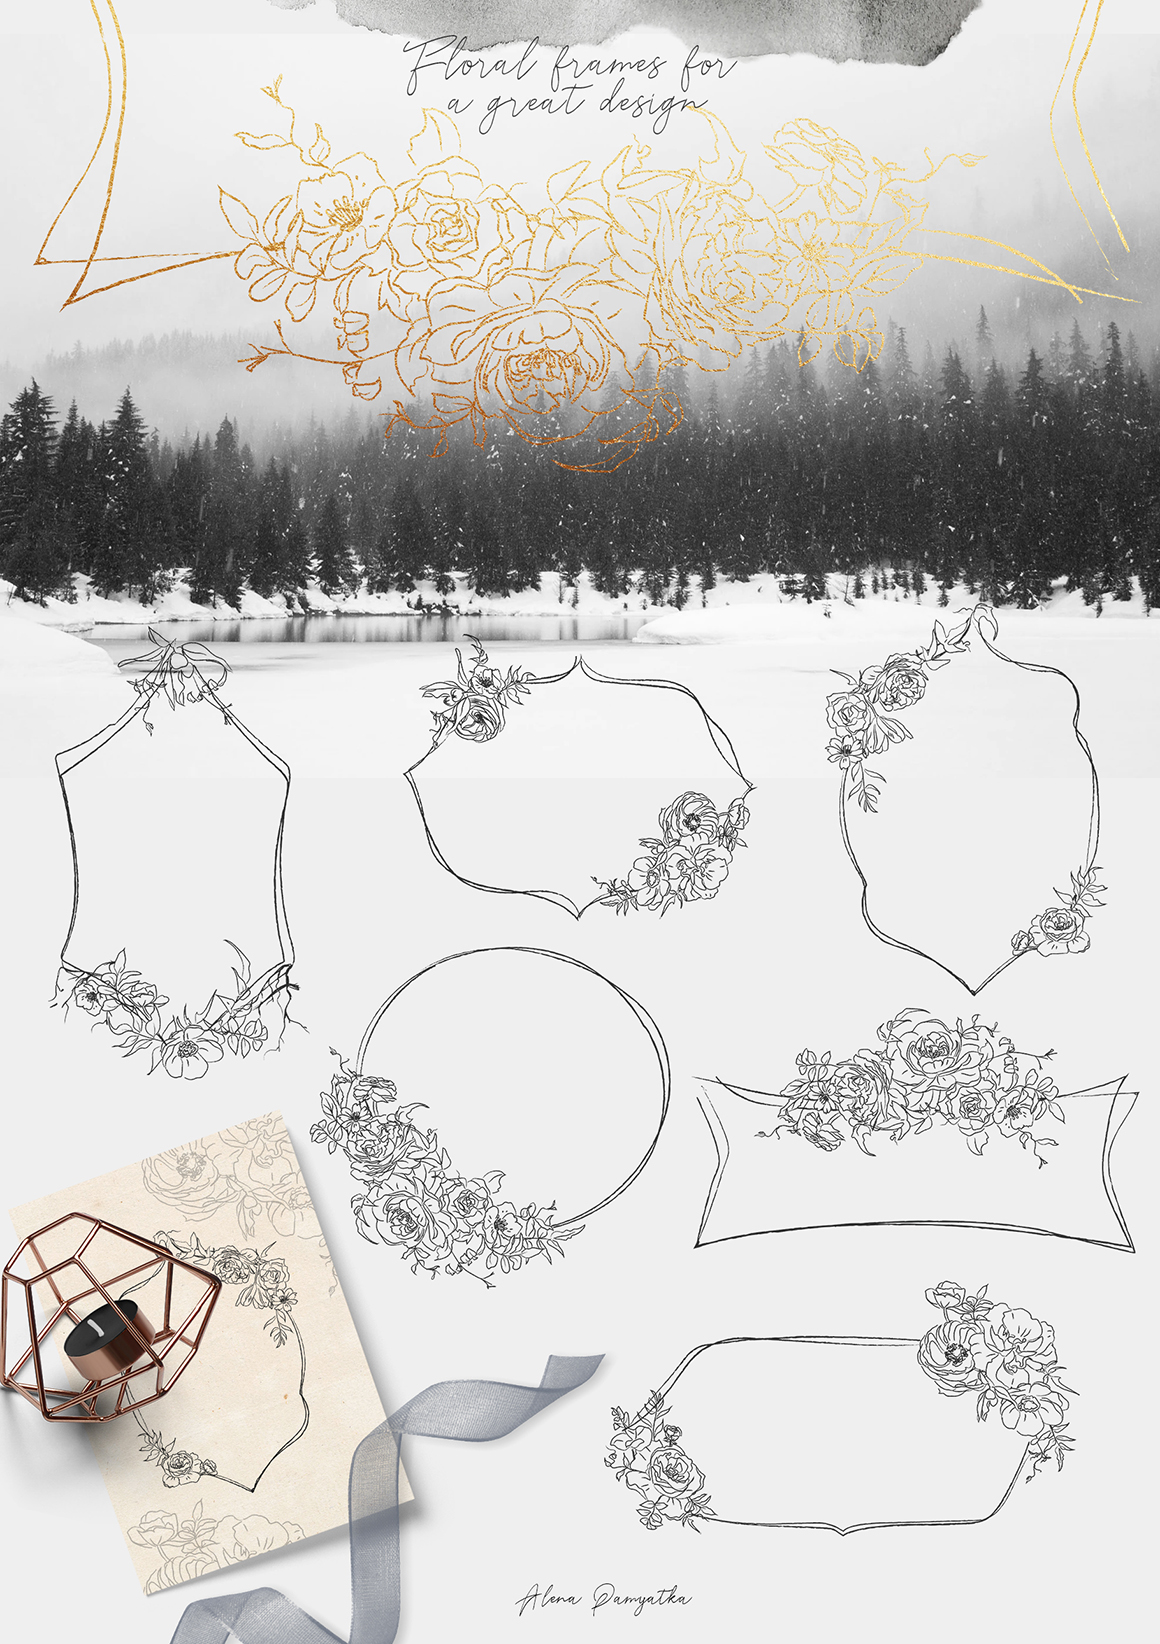 Floral and Animals. Winter Graphic Illustrations.